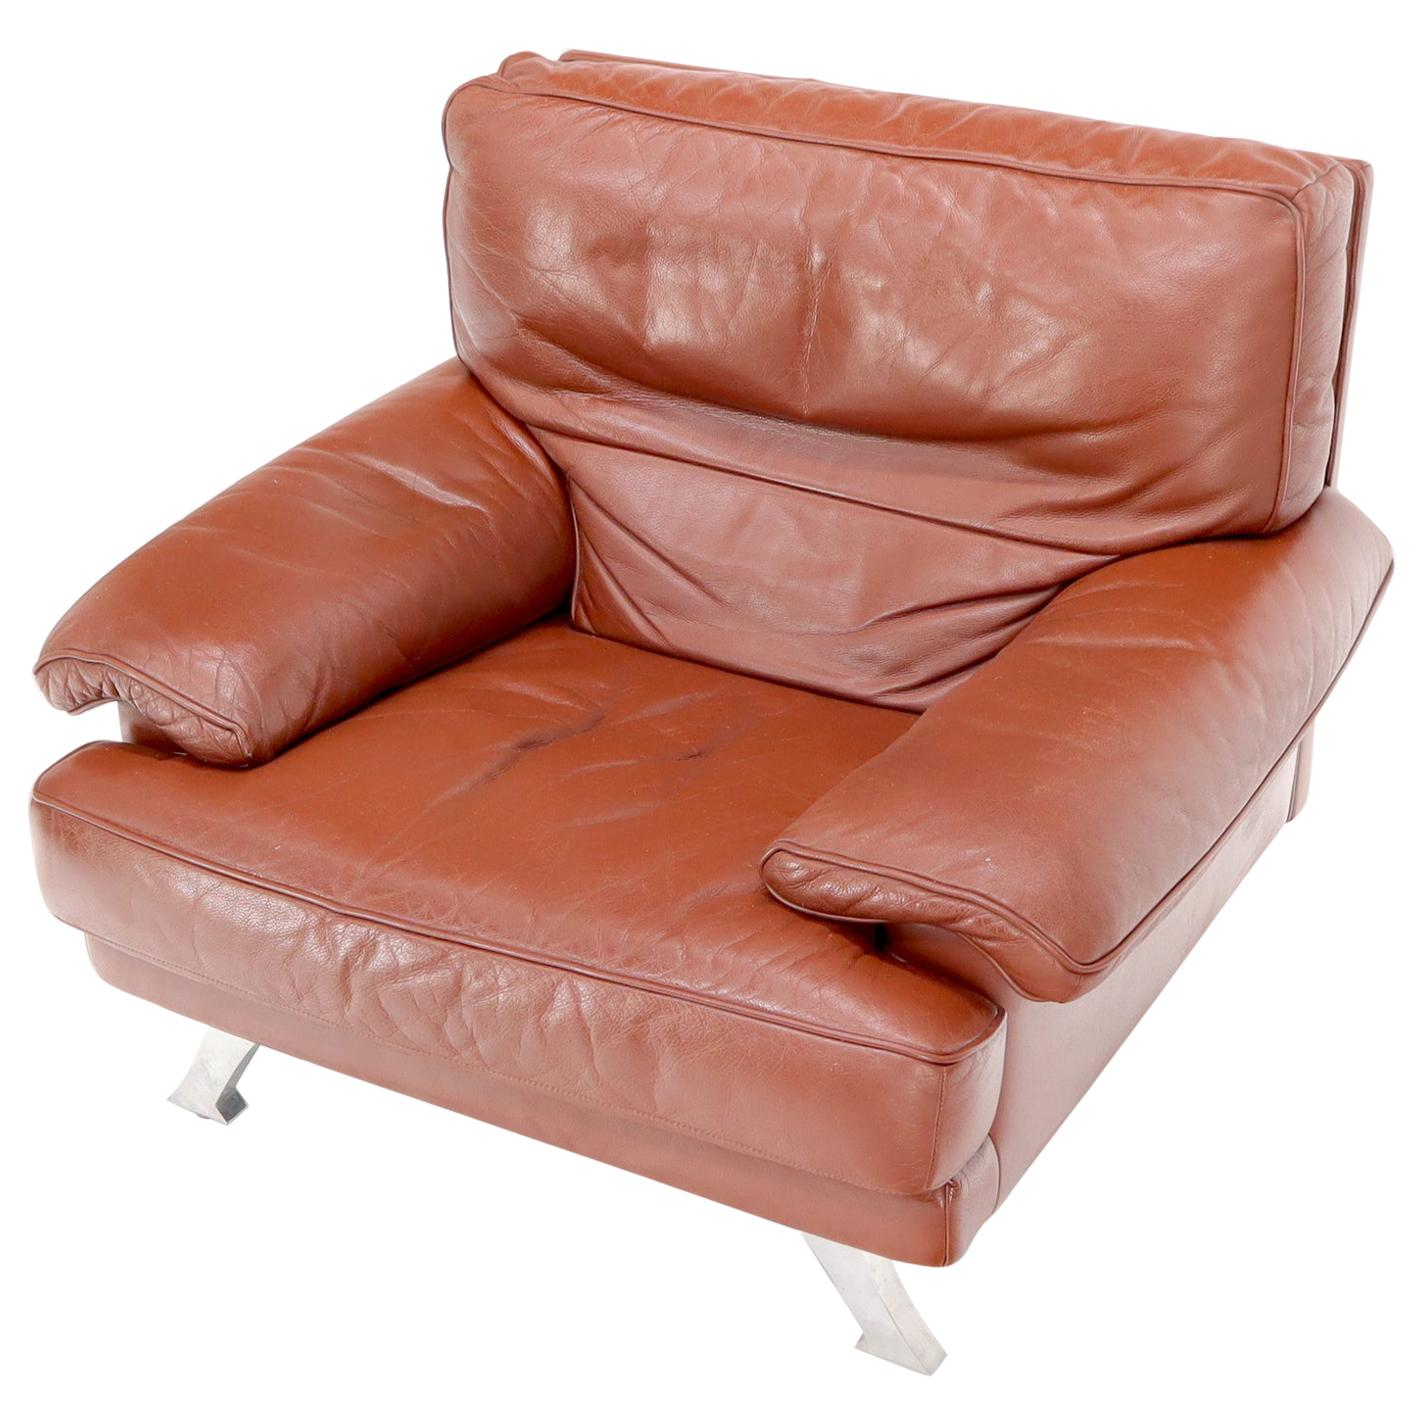 Ligne Roset Made in France Wide Seat Browm Leather Lounge Chair